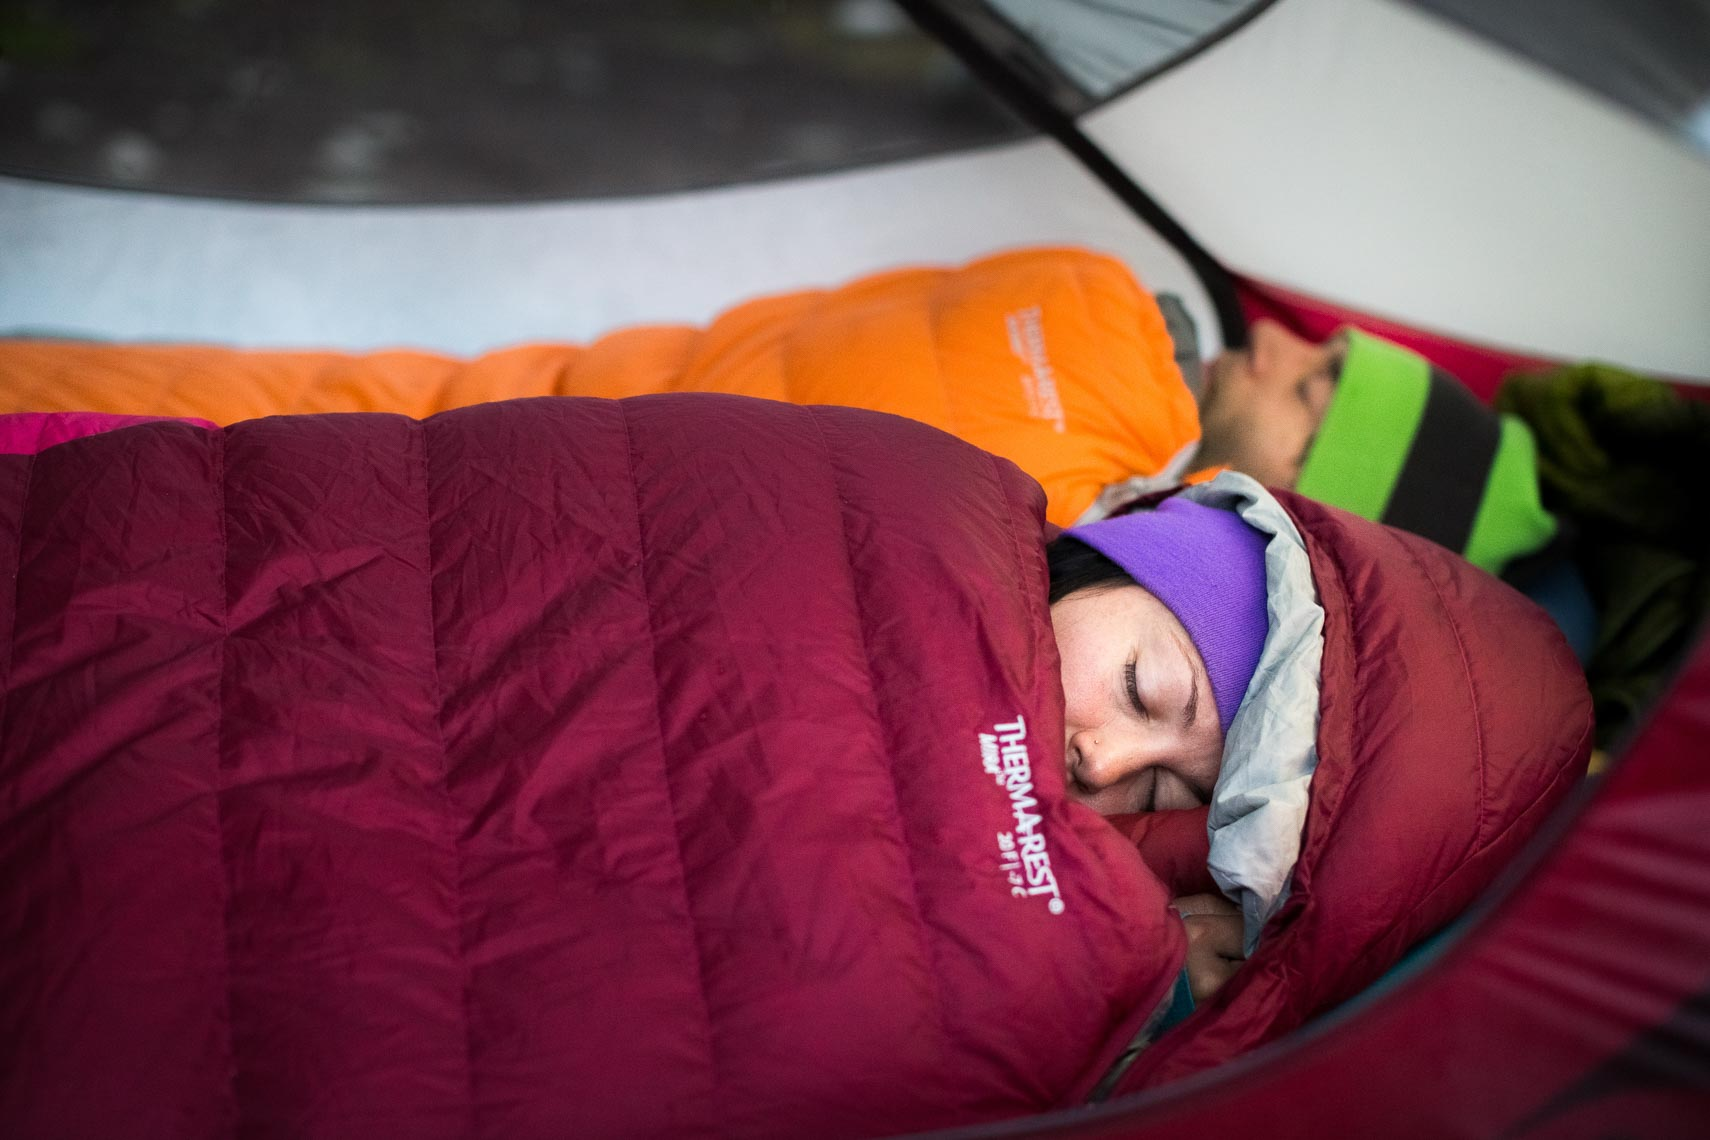 Thermarest sleeping back imagery by outdoor lifestyle photographer from Whistler